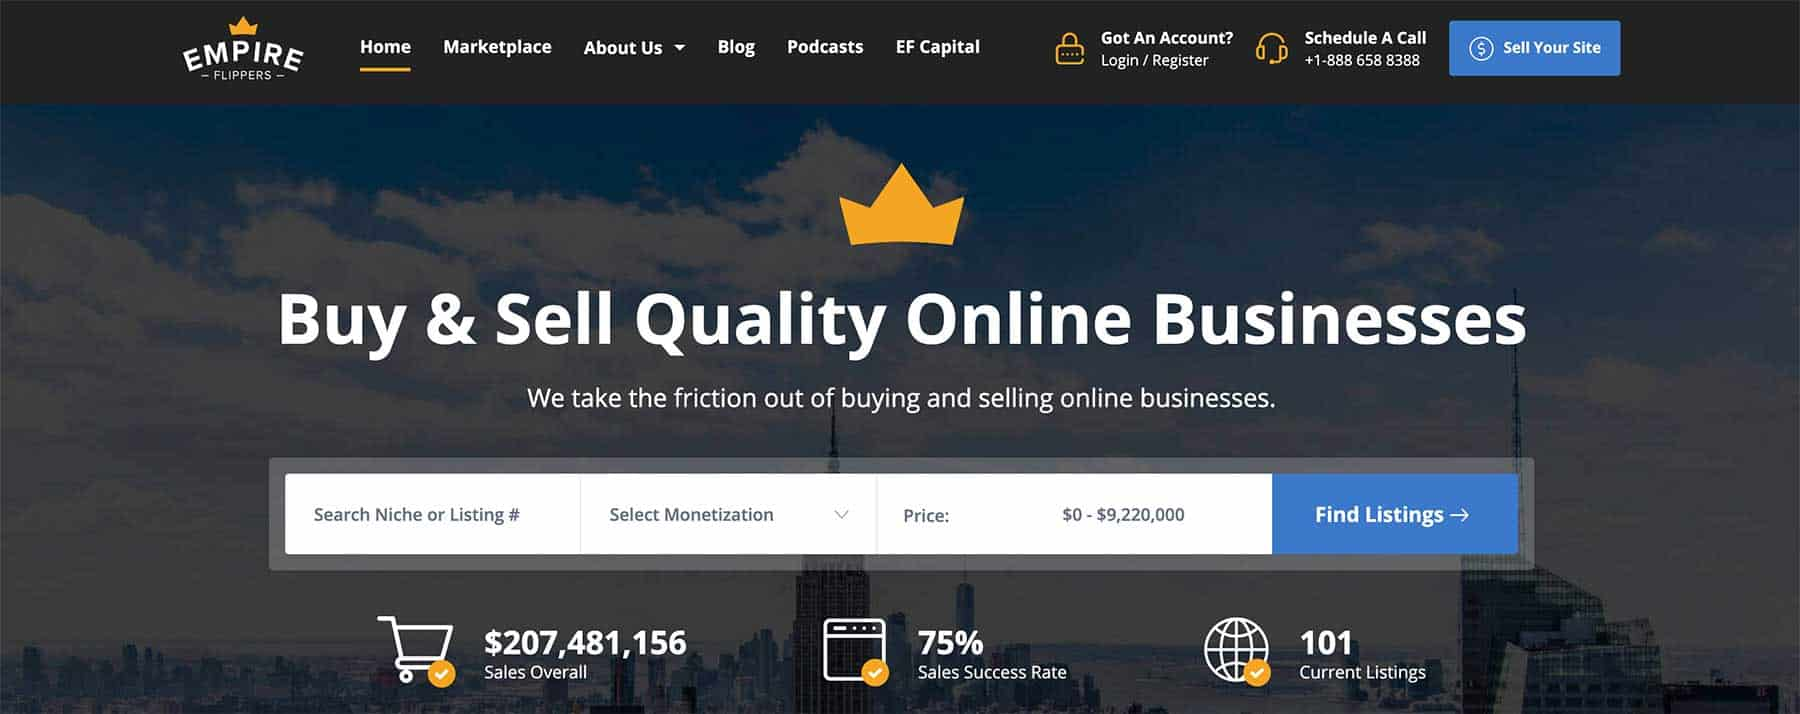 Sell Website on Empire Flippers